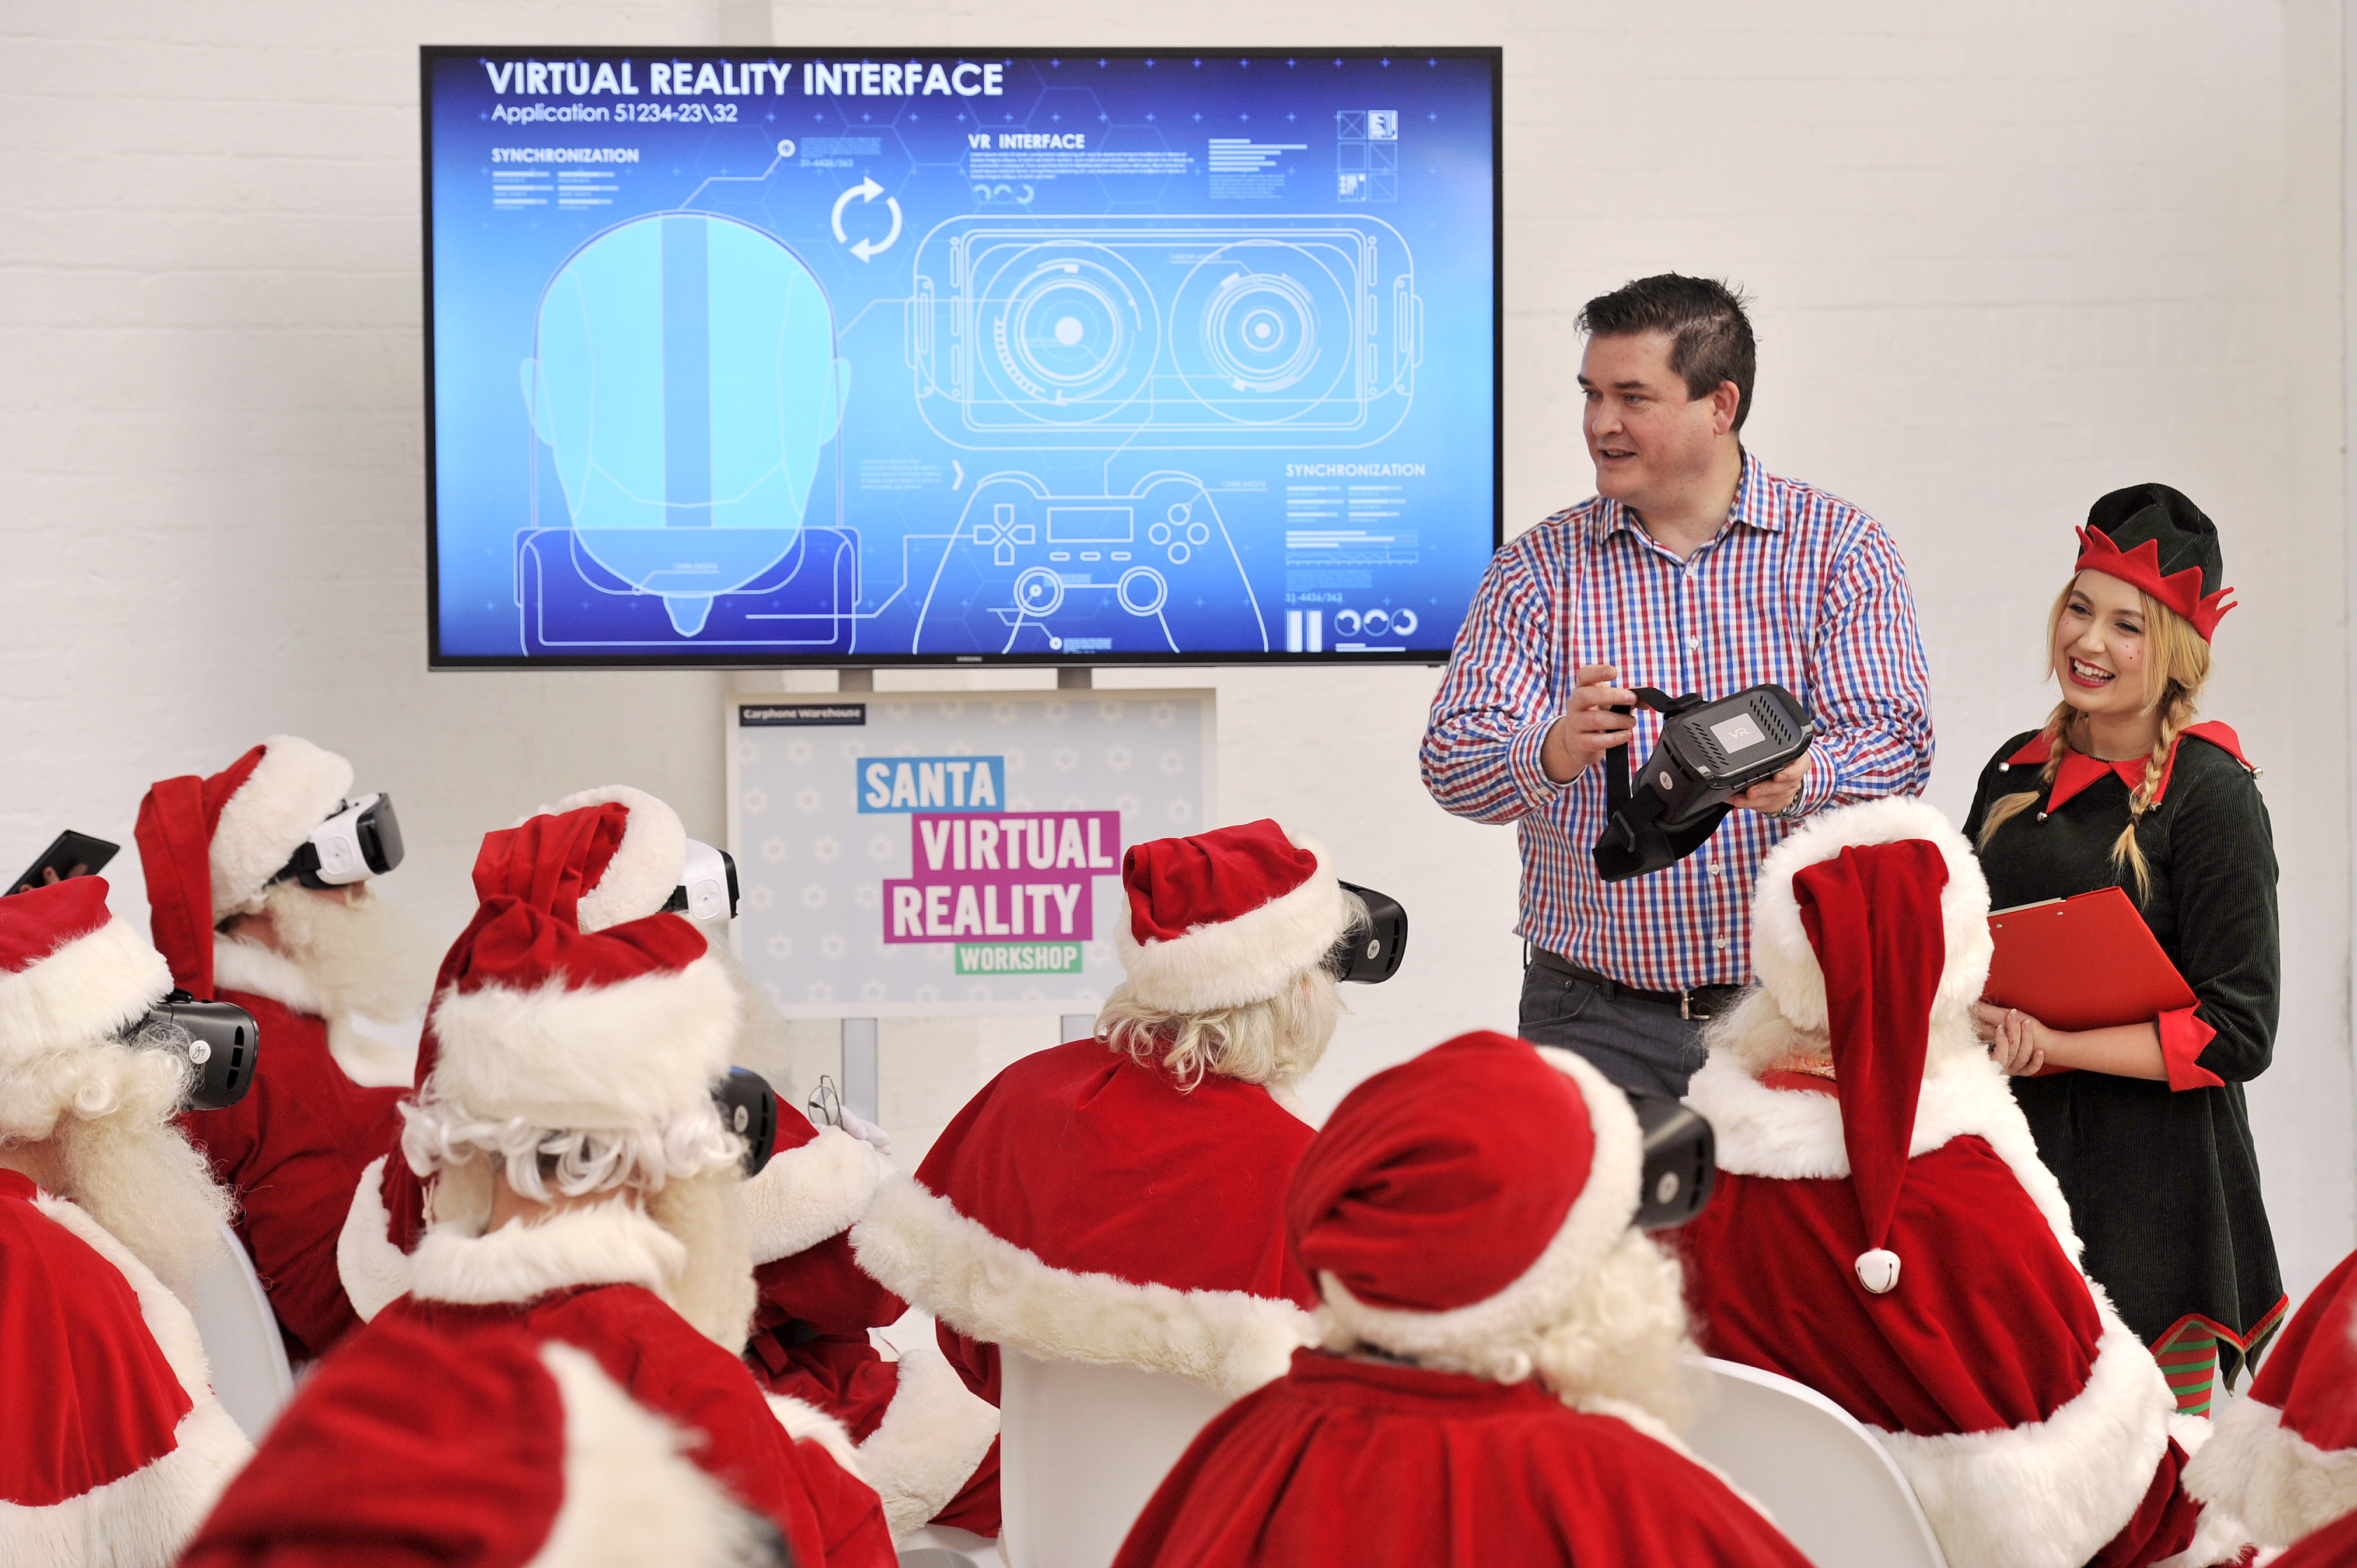 A group of Father Christmases wearing virtual reality headsets sit listening to a presentation about VR technology by a man in a checked shirt and an elf helper.